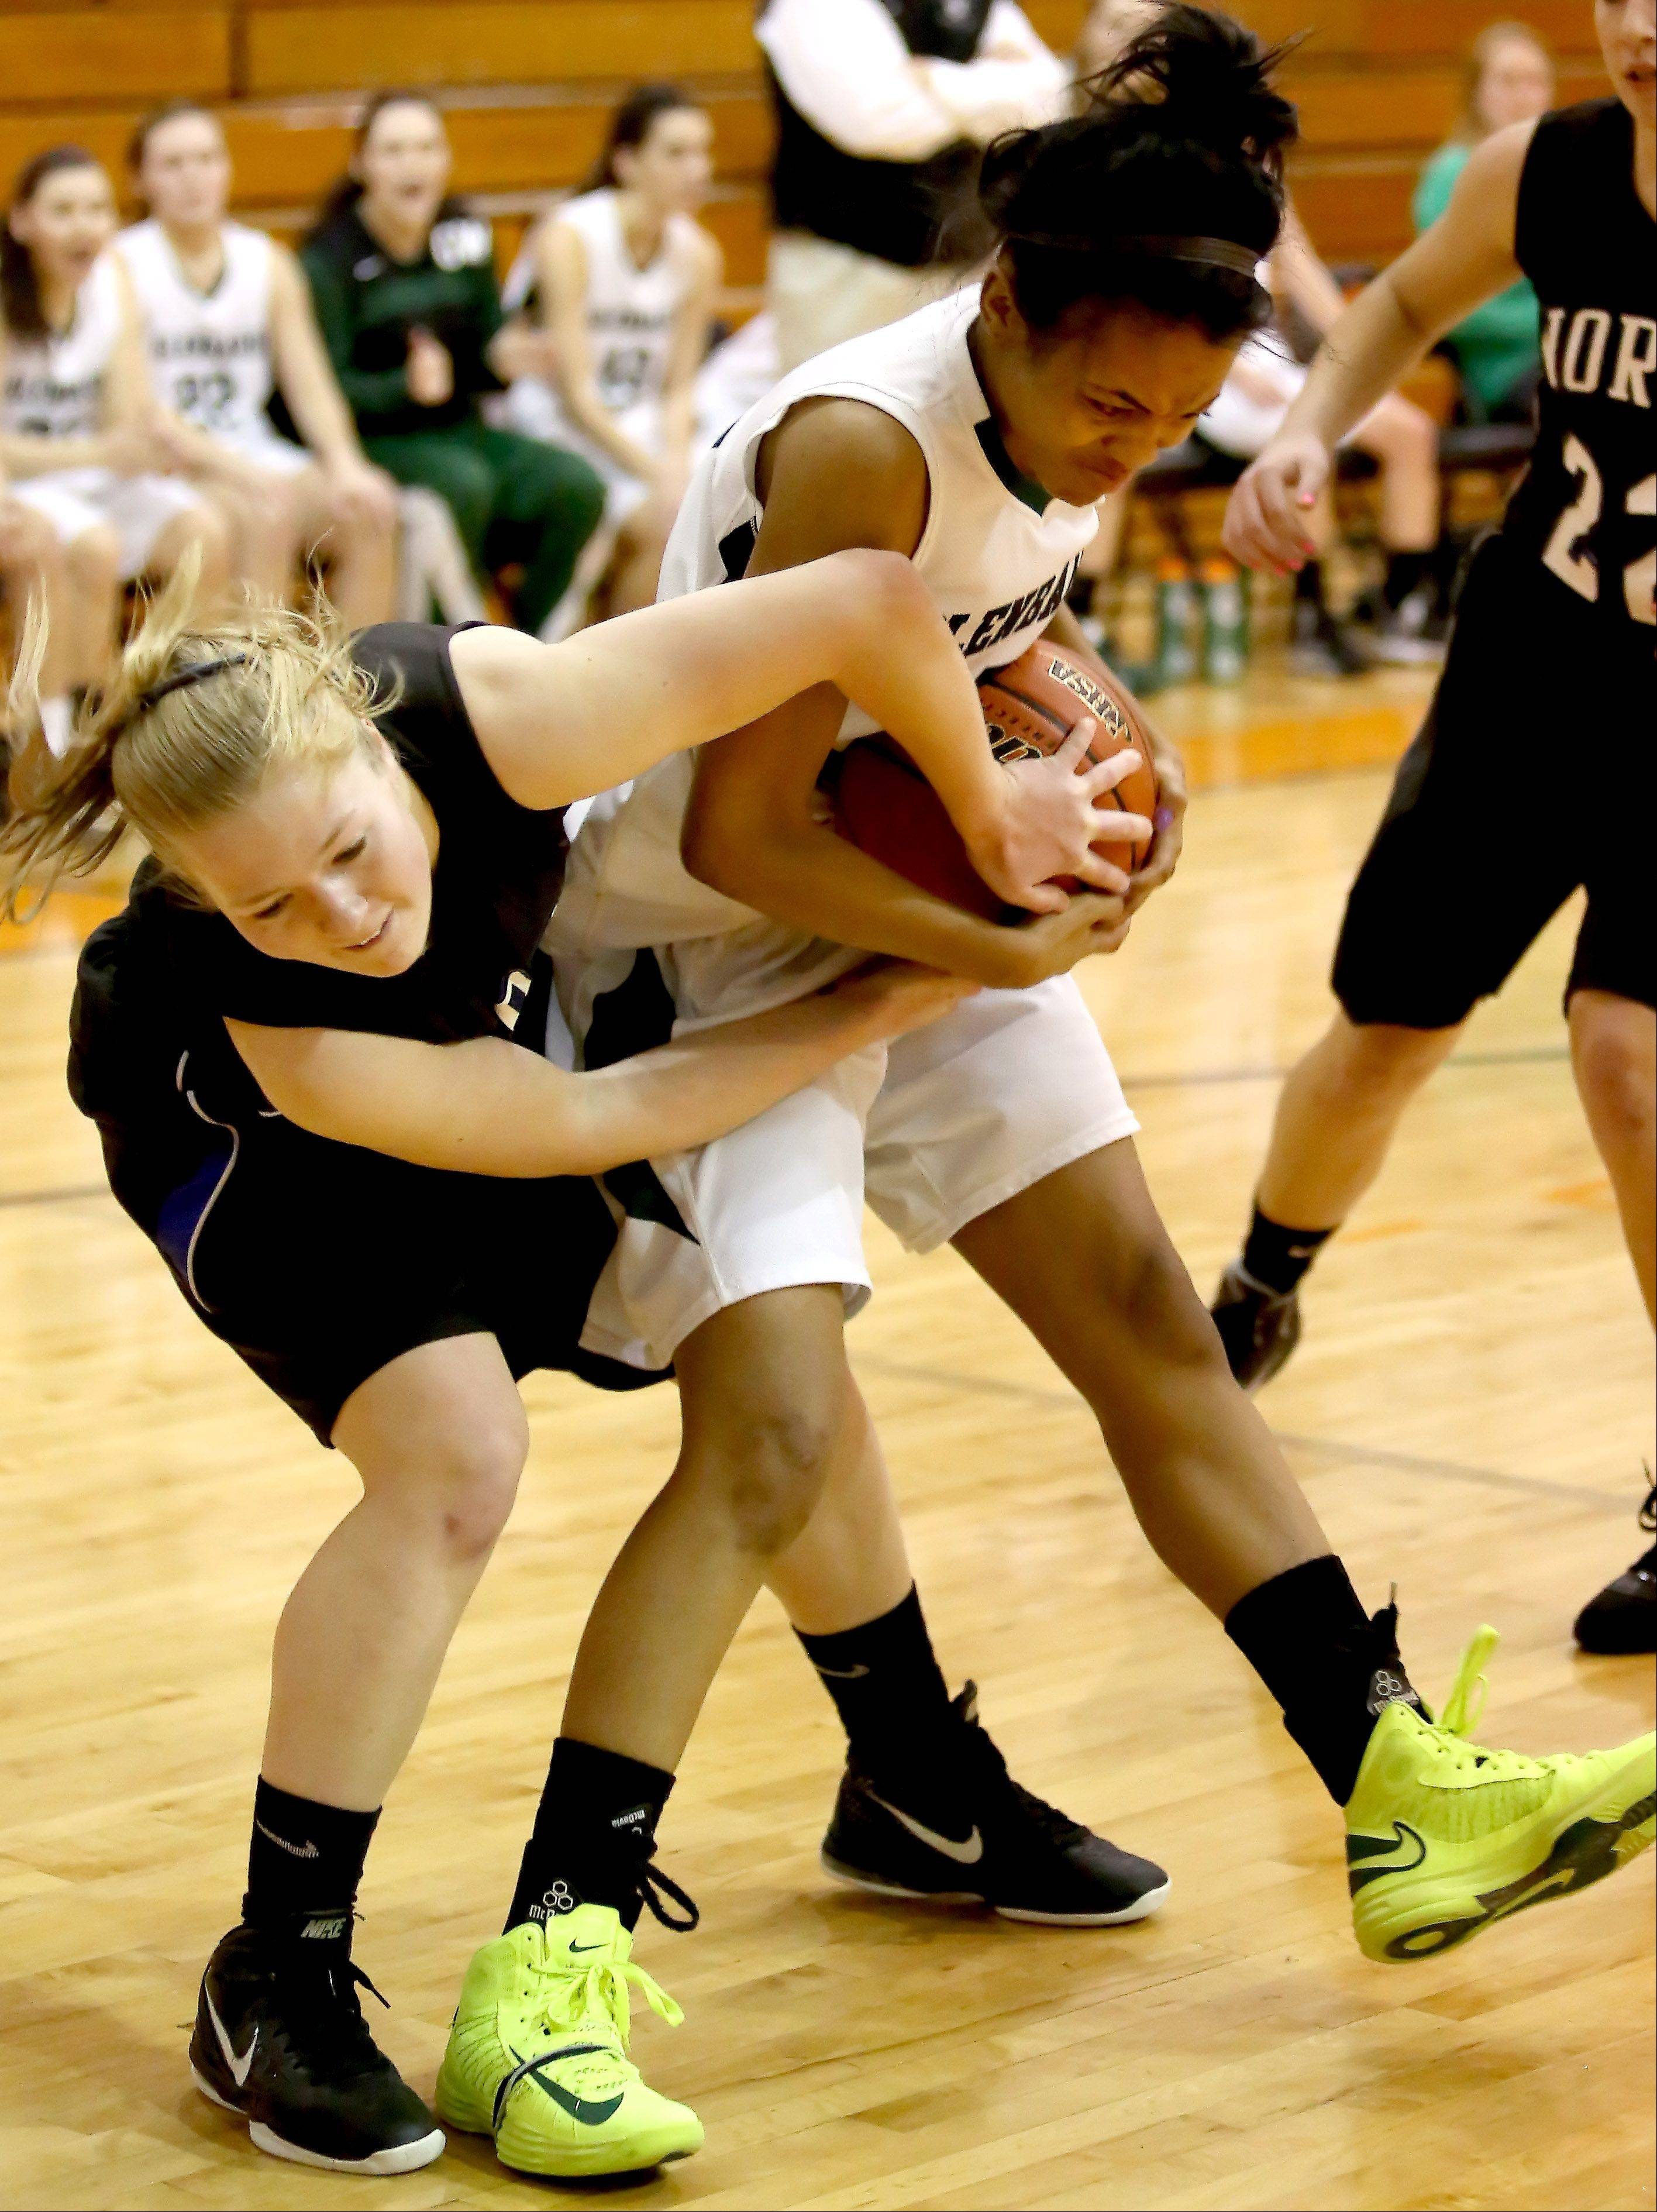 St. Charles North's Natalie Winkates, left, and Glenbard West Breanna Venson wrestle for control during Monday's Class 4A regional basketball game.